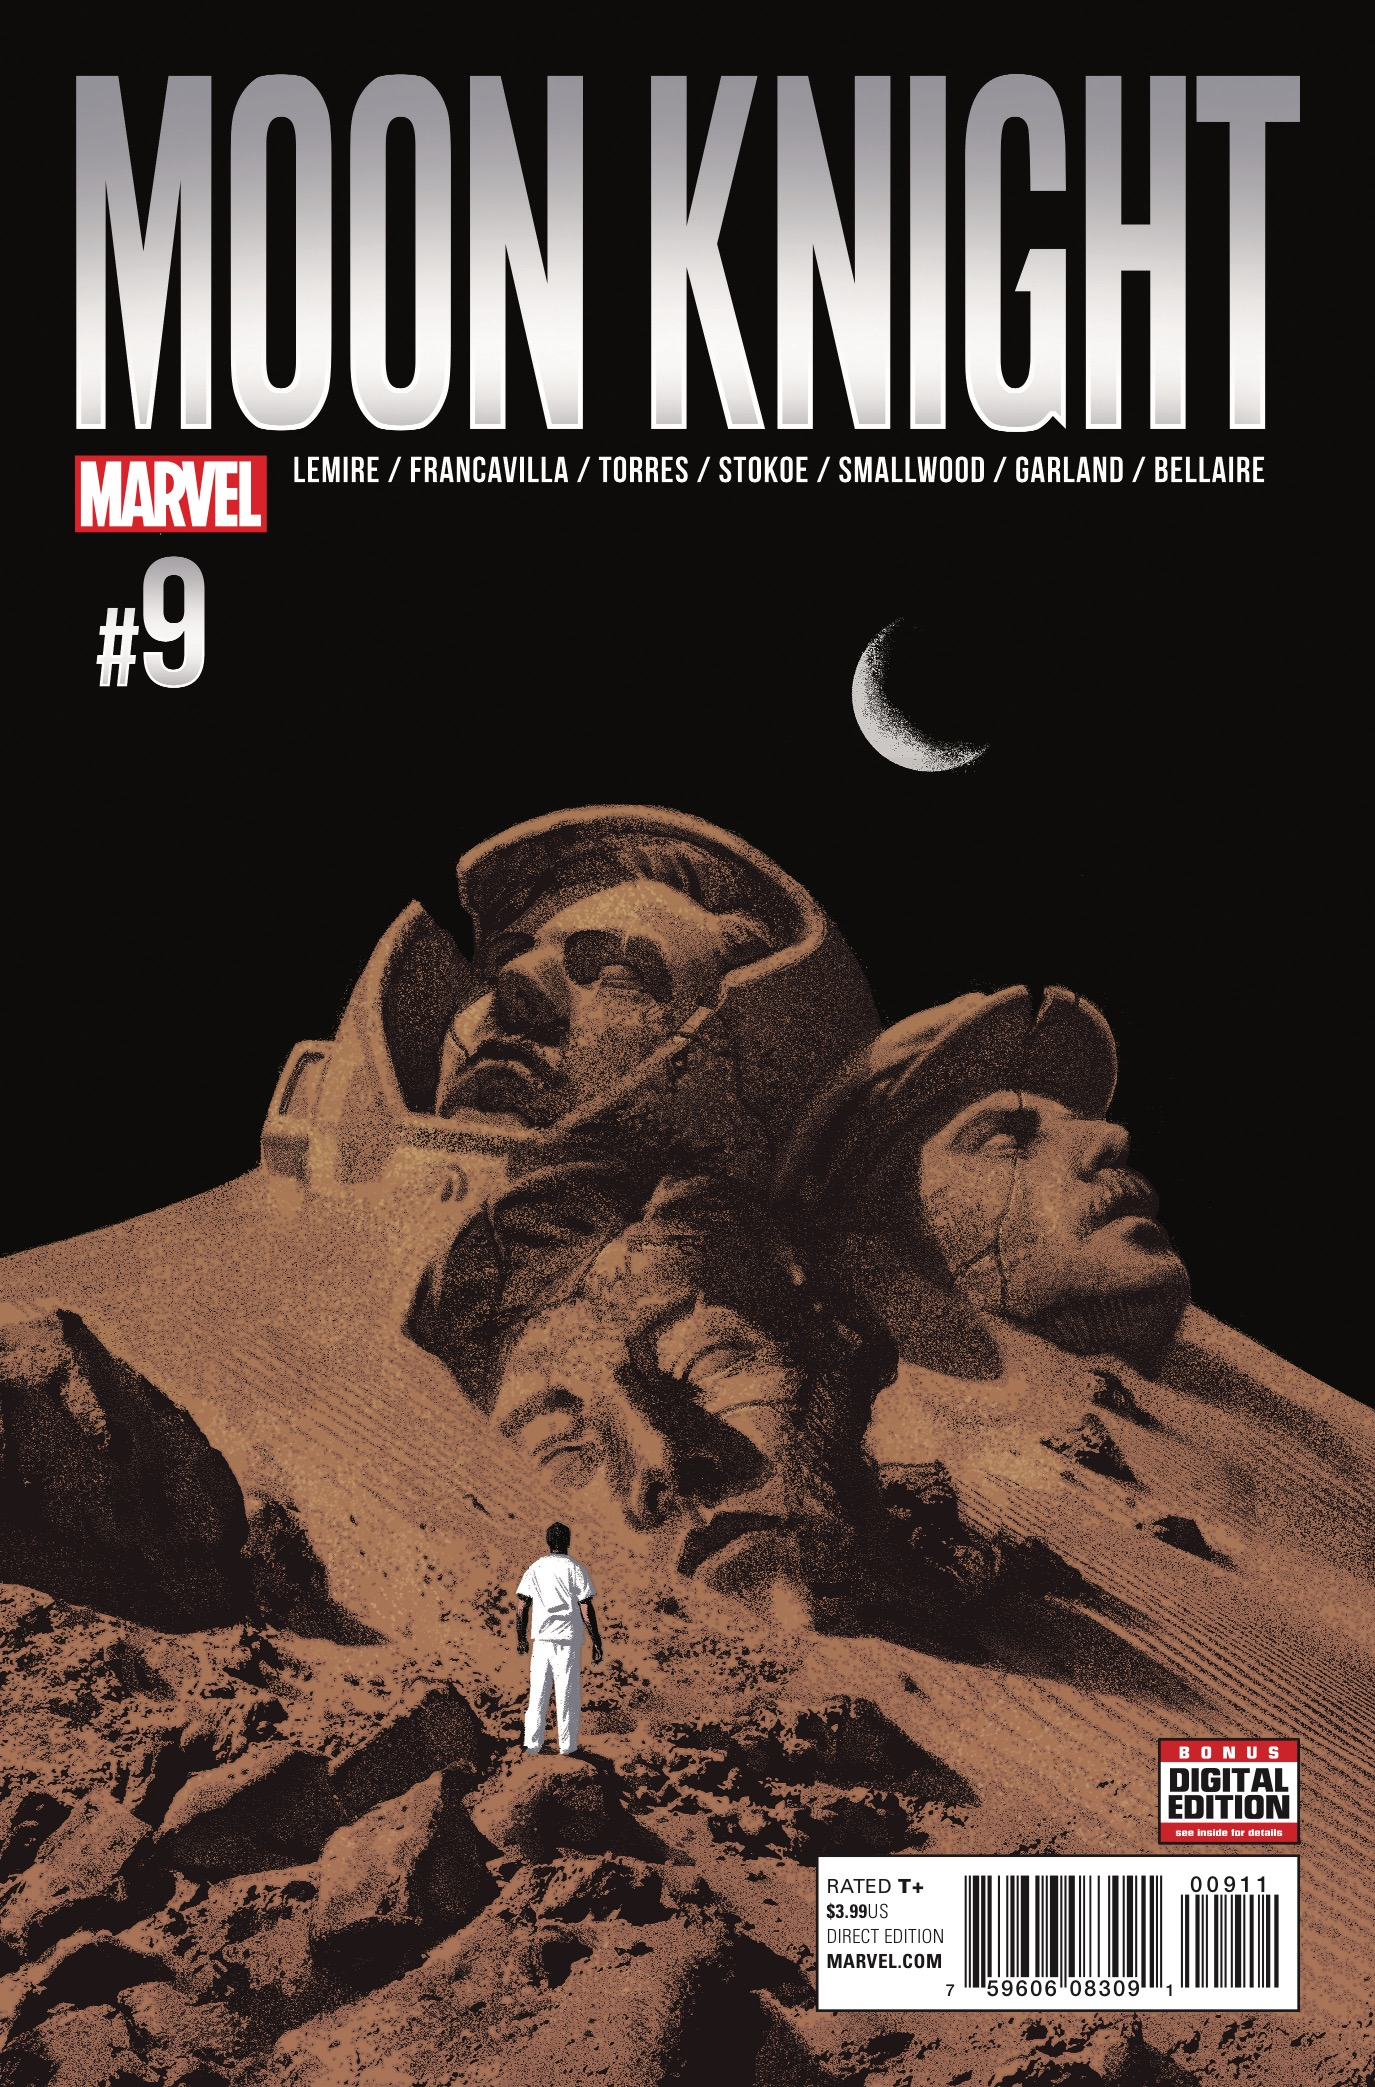 [EXCLUSIVE] Marvel Preview: Moon Knight #9